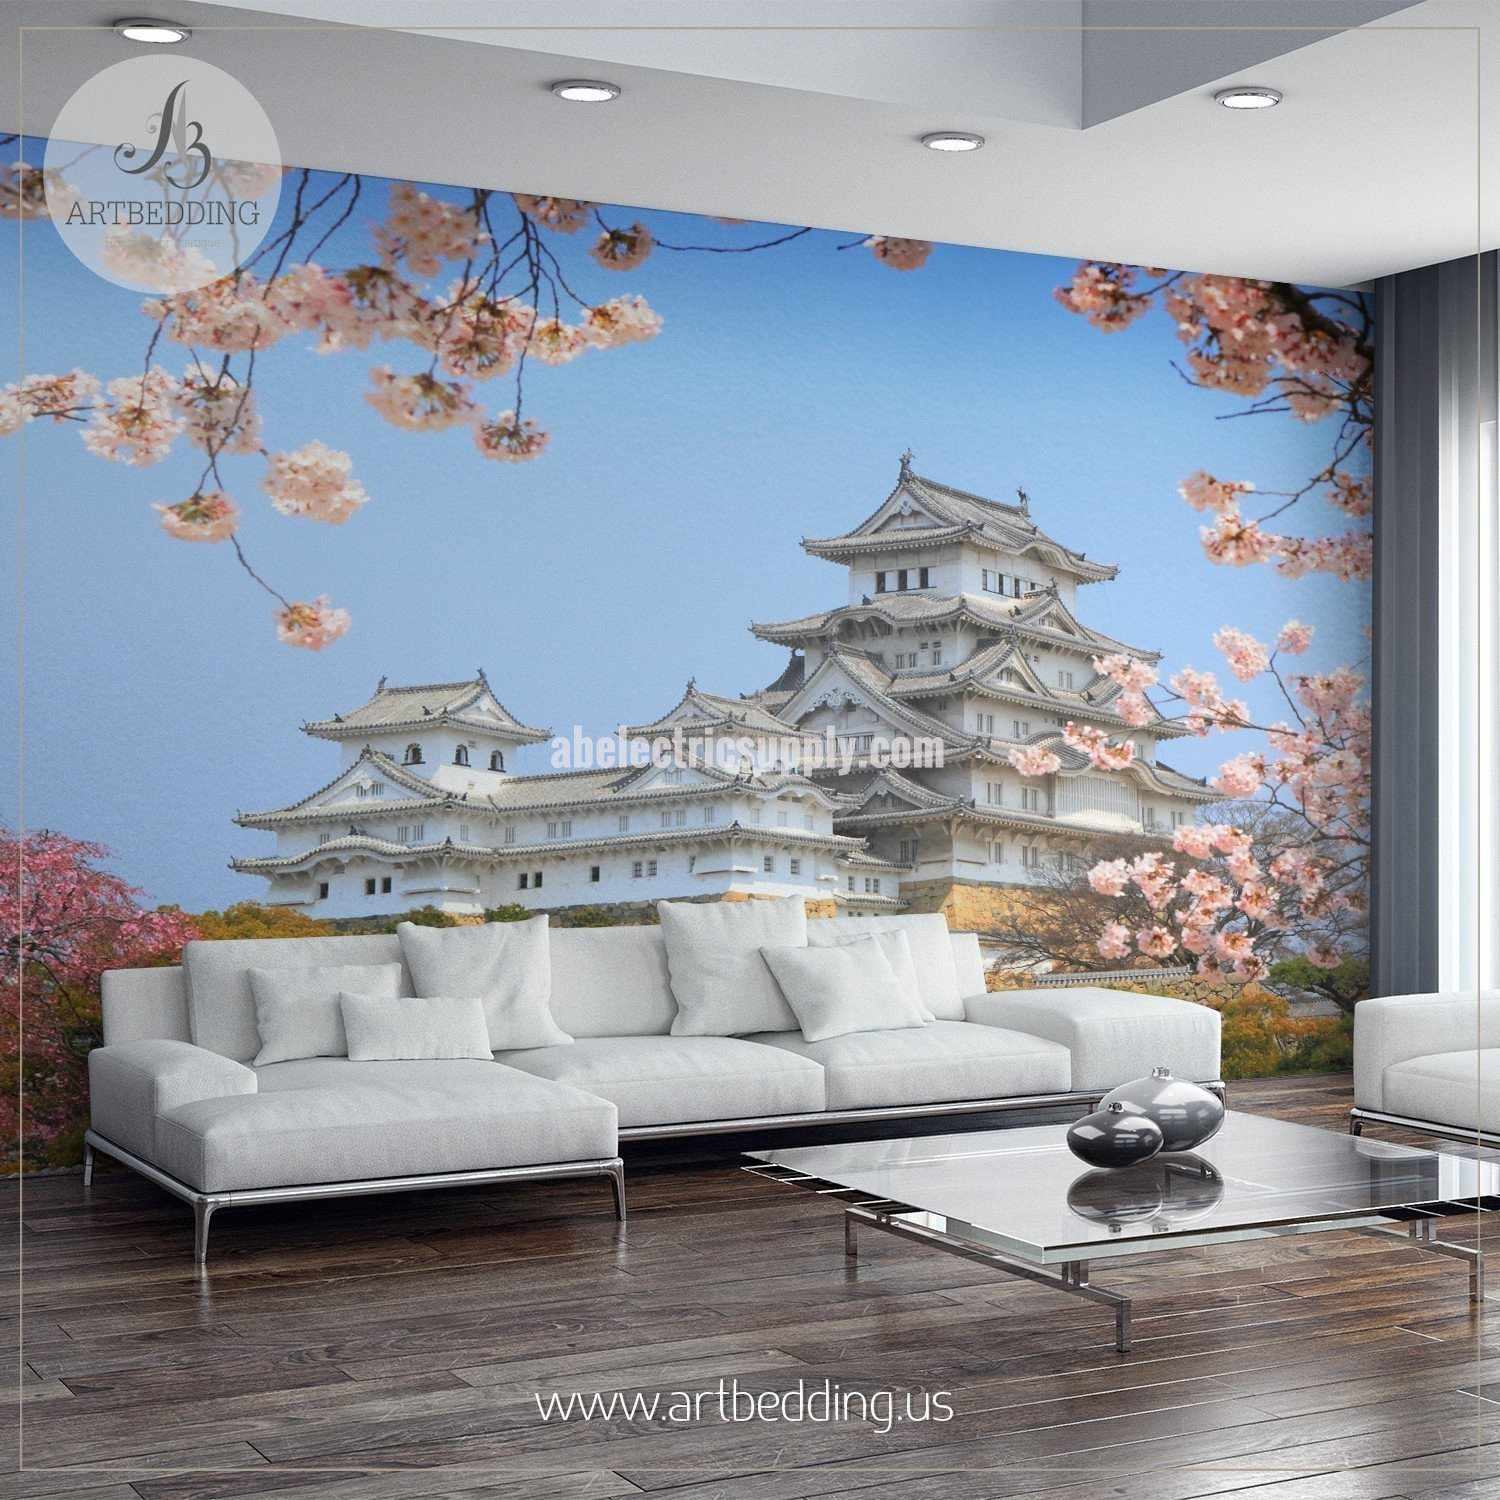 Medium Castle Decoration: Tower Of The UNESCO World Heritage Site Himeji Castle With